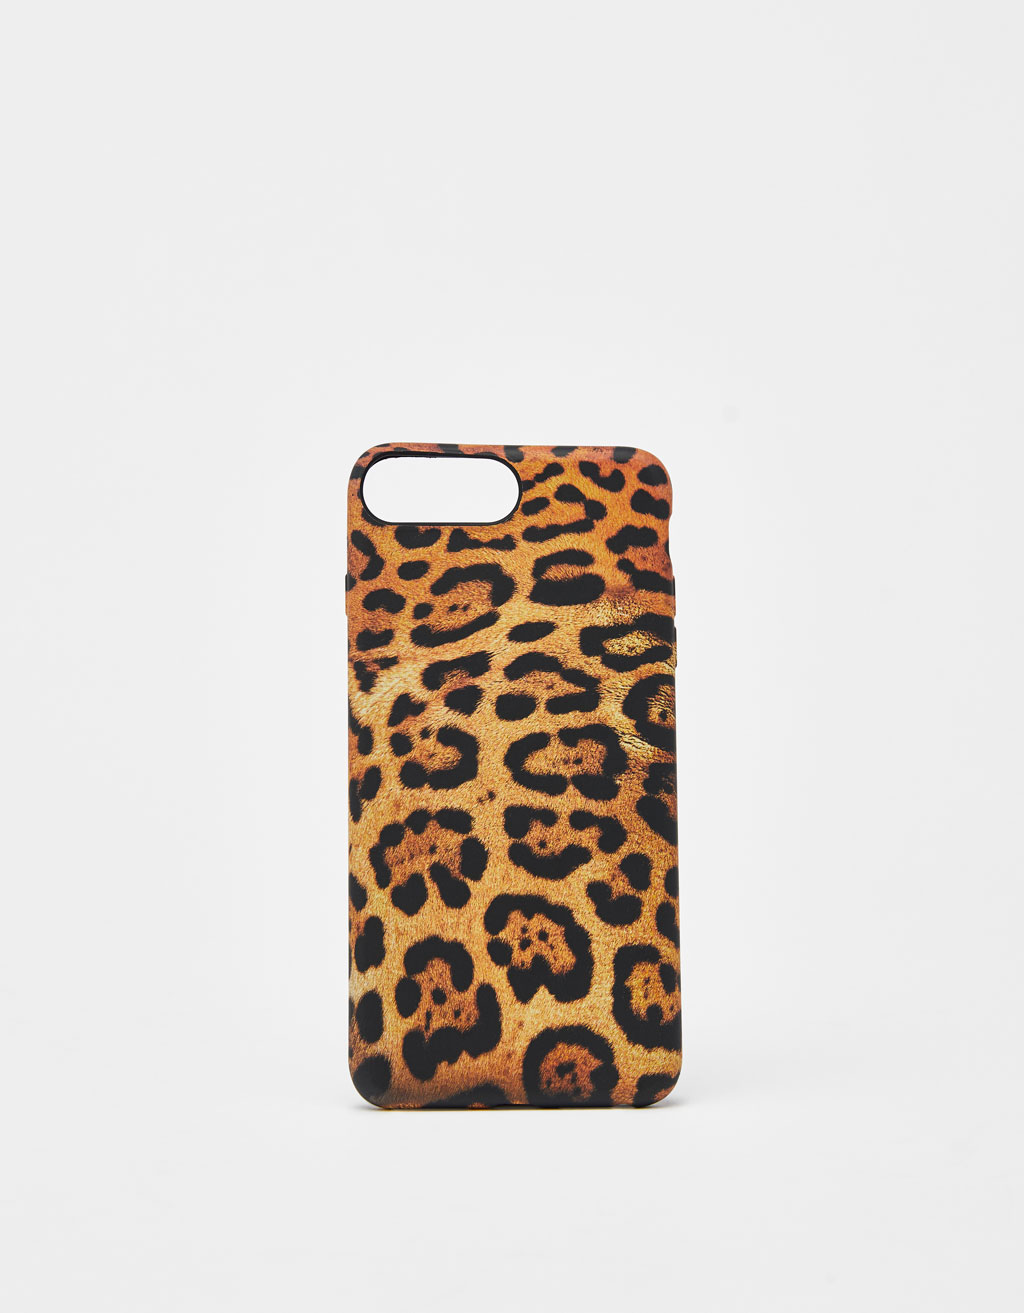 Carcassa de lleopard iPhone 6 plus/7 plus/8 plus